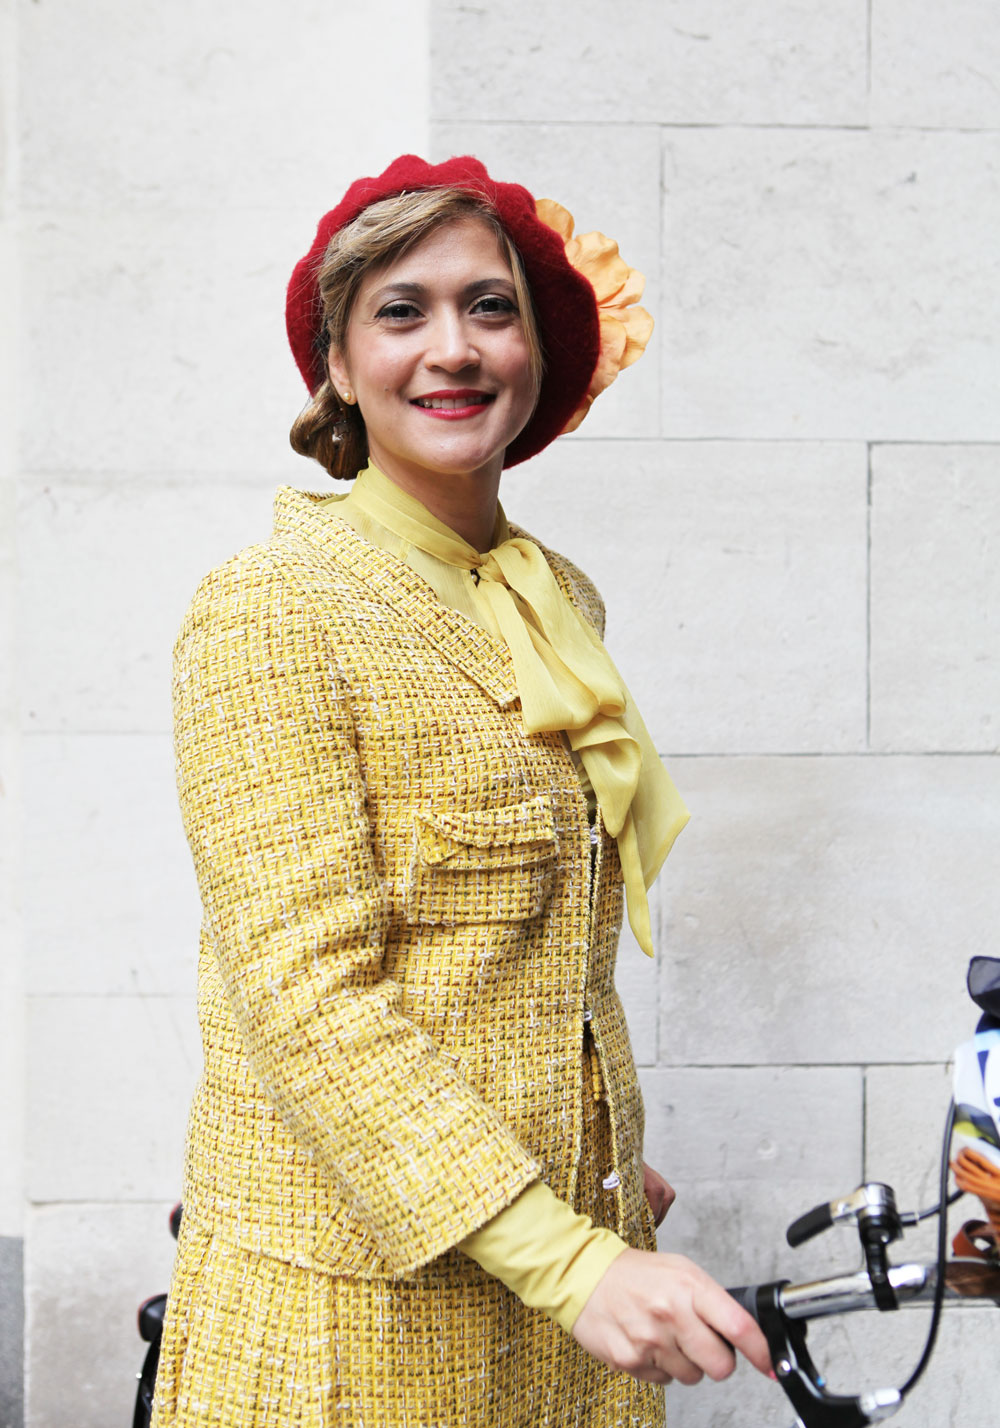 Tweed-Run-London-2014-Bike-Pretty-Most-Dashing-Dame-Bike-Fashion-Photo-Kelly-Miller-0